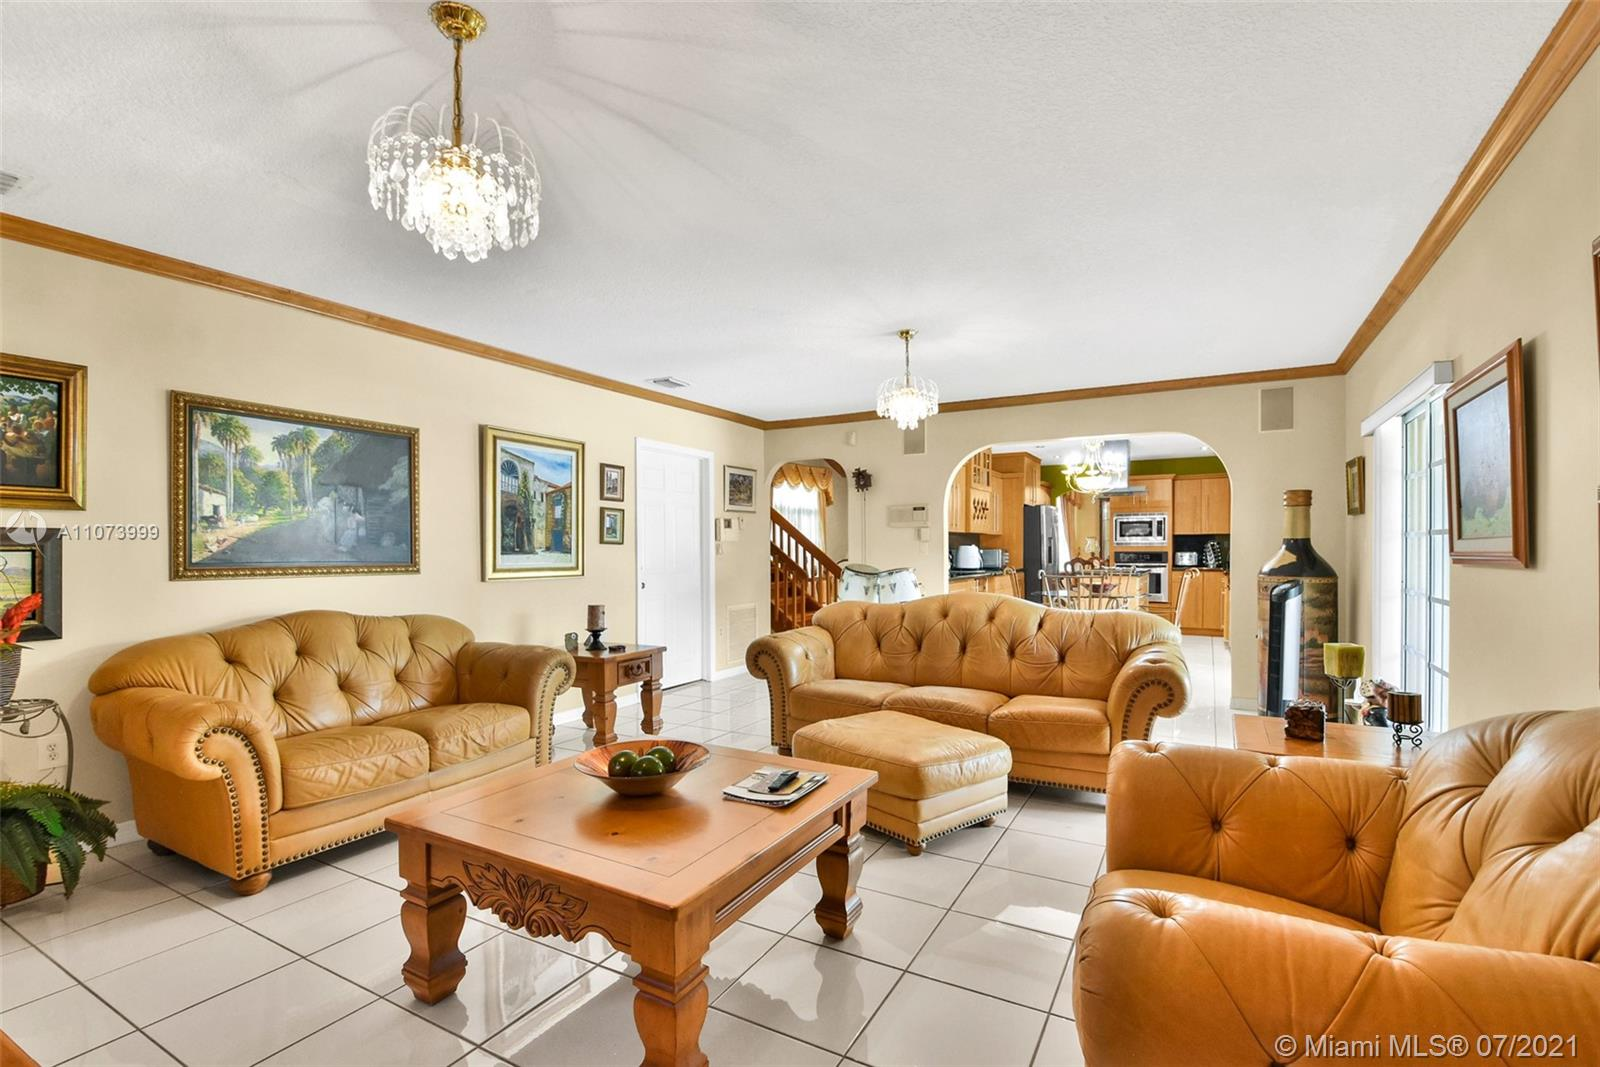 Photo of 185 NW 132nd Ave, Home